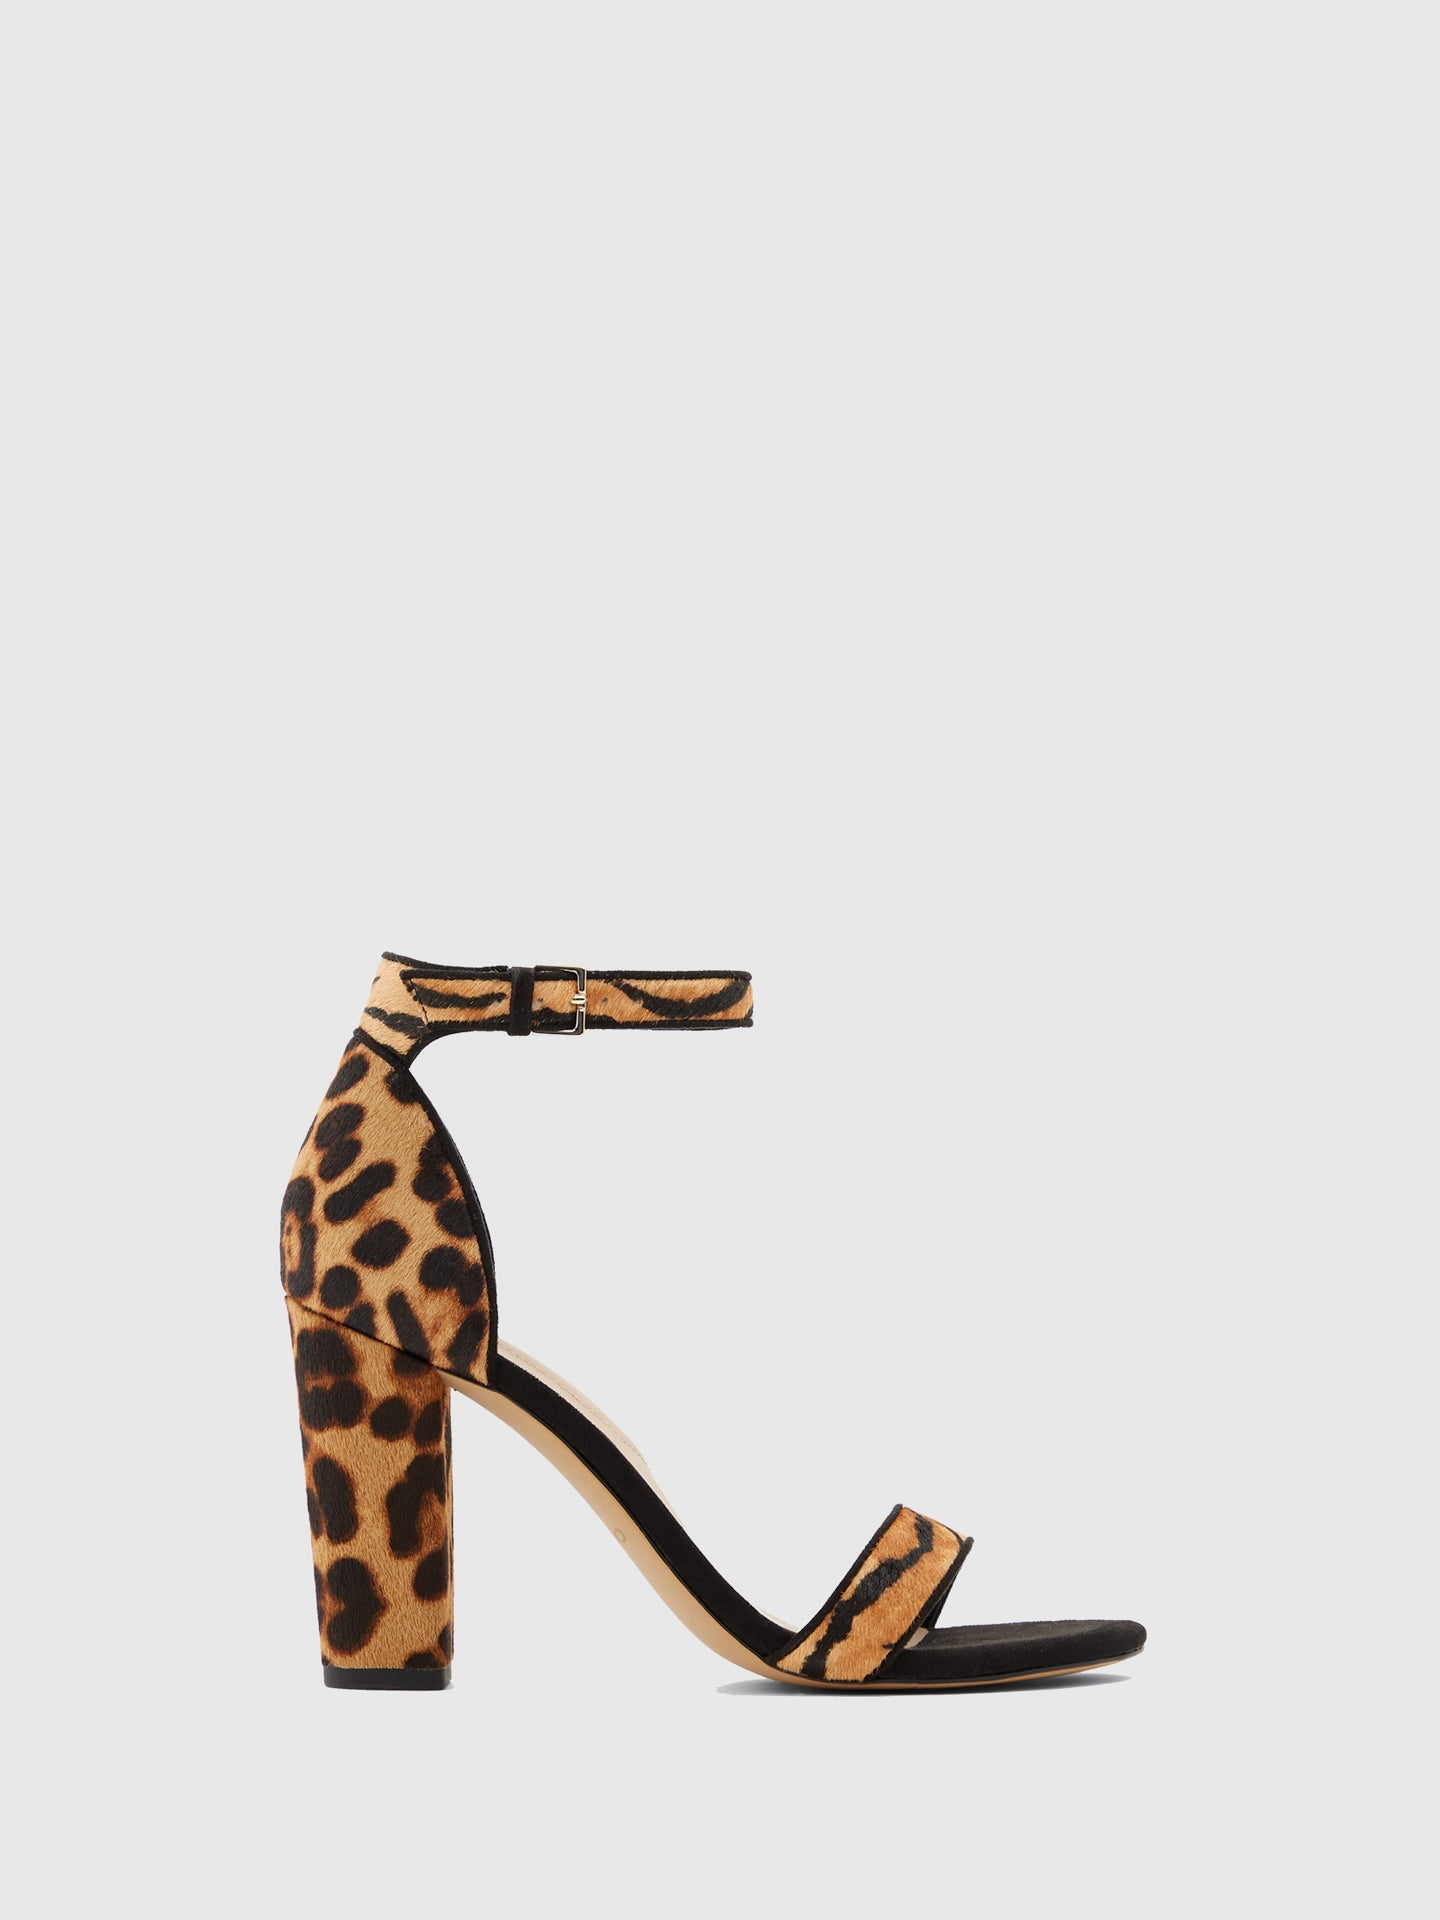 Aldo Brown Black Ankle Strap Sandals